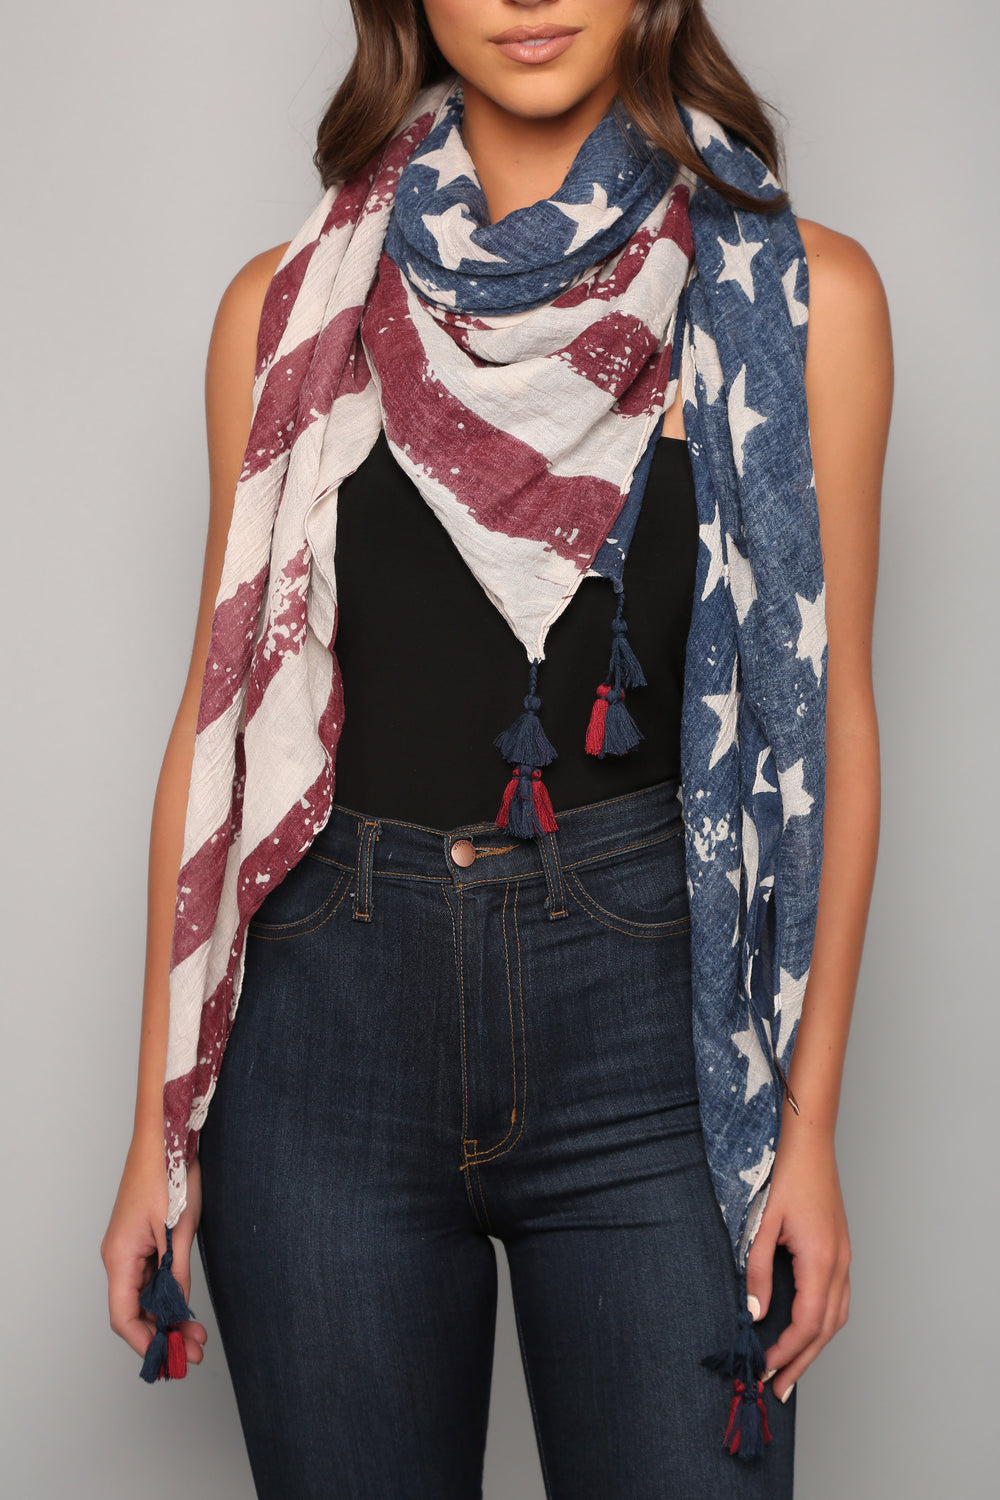 Stars And Stripes Scarf - Red/Multi